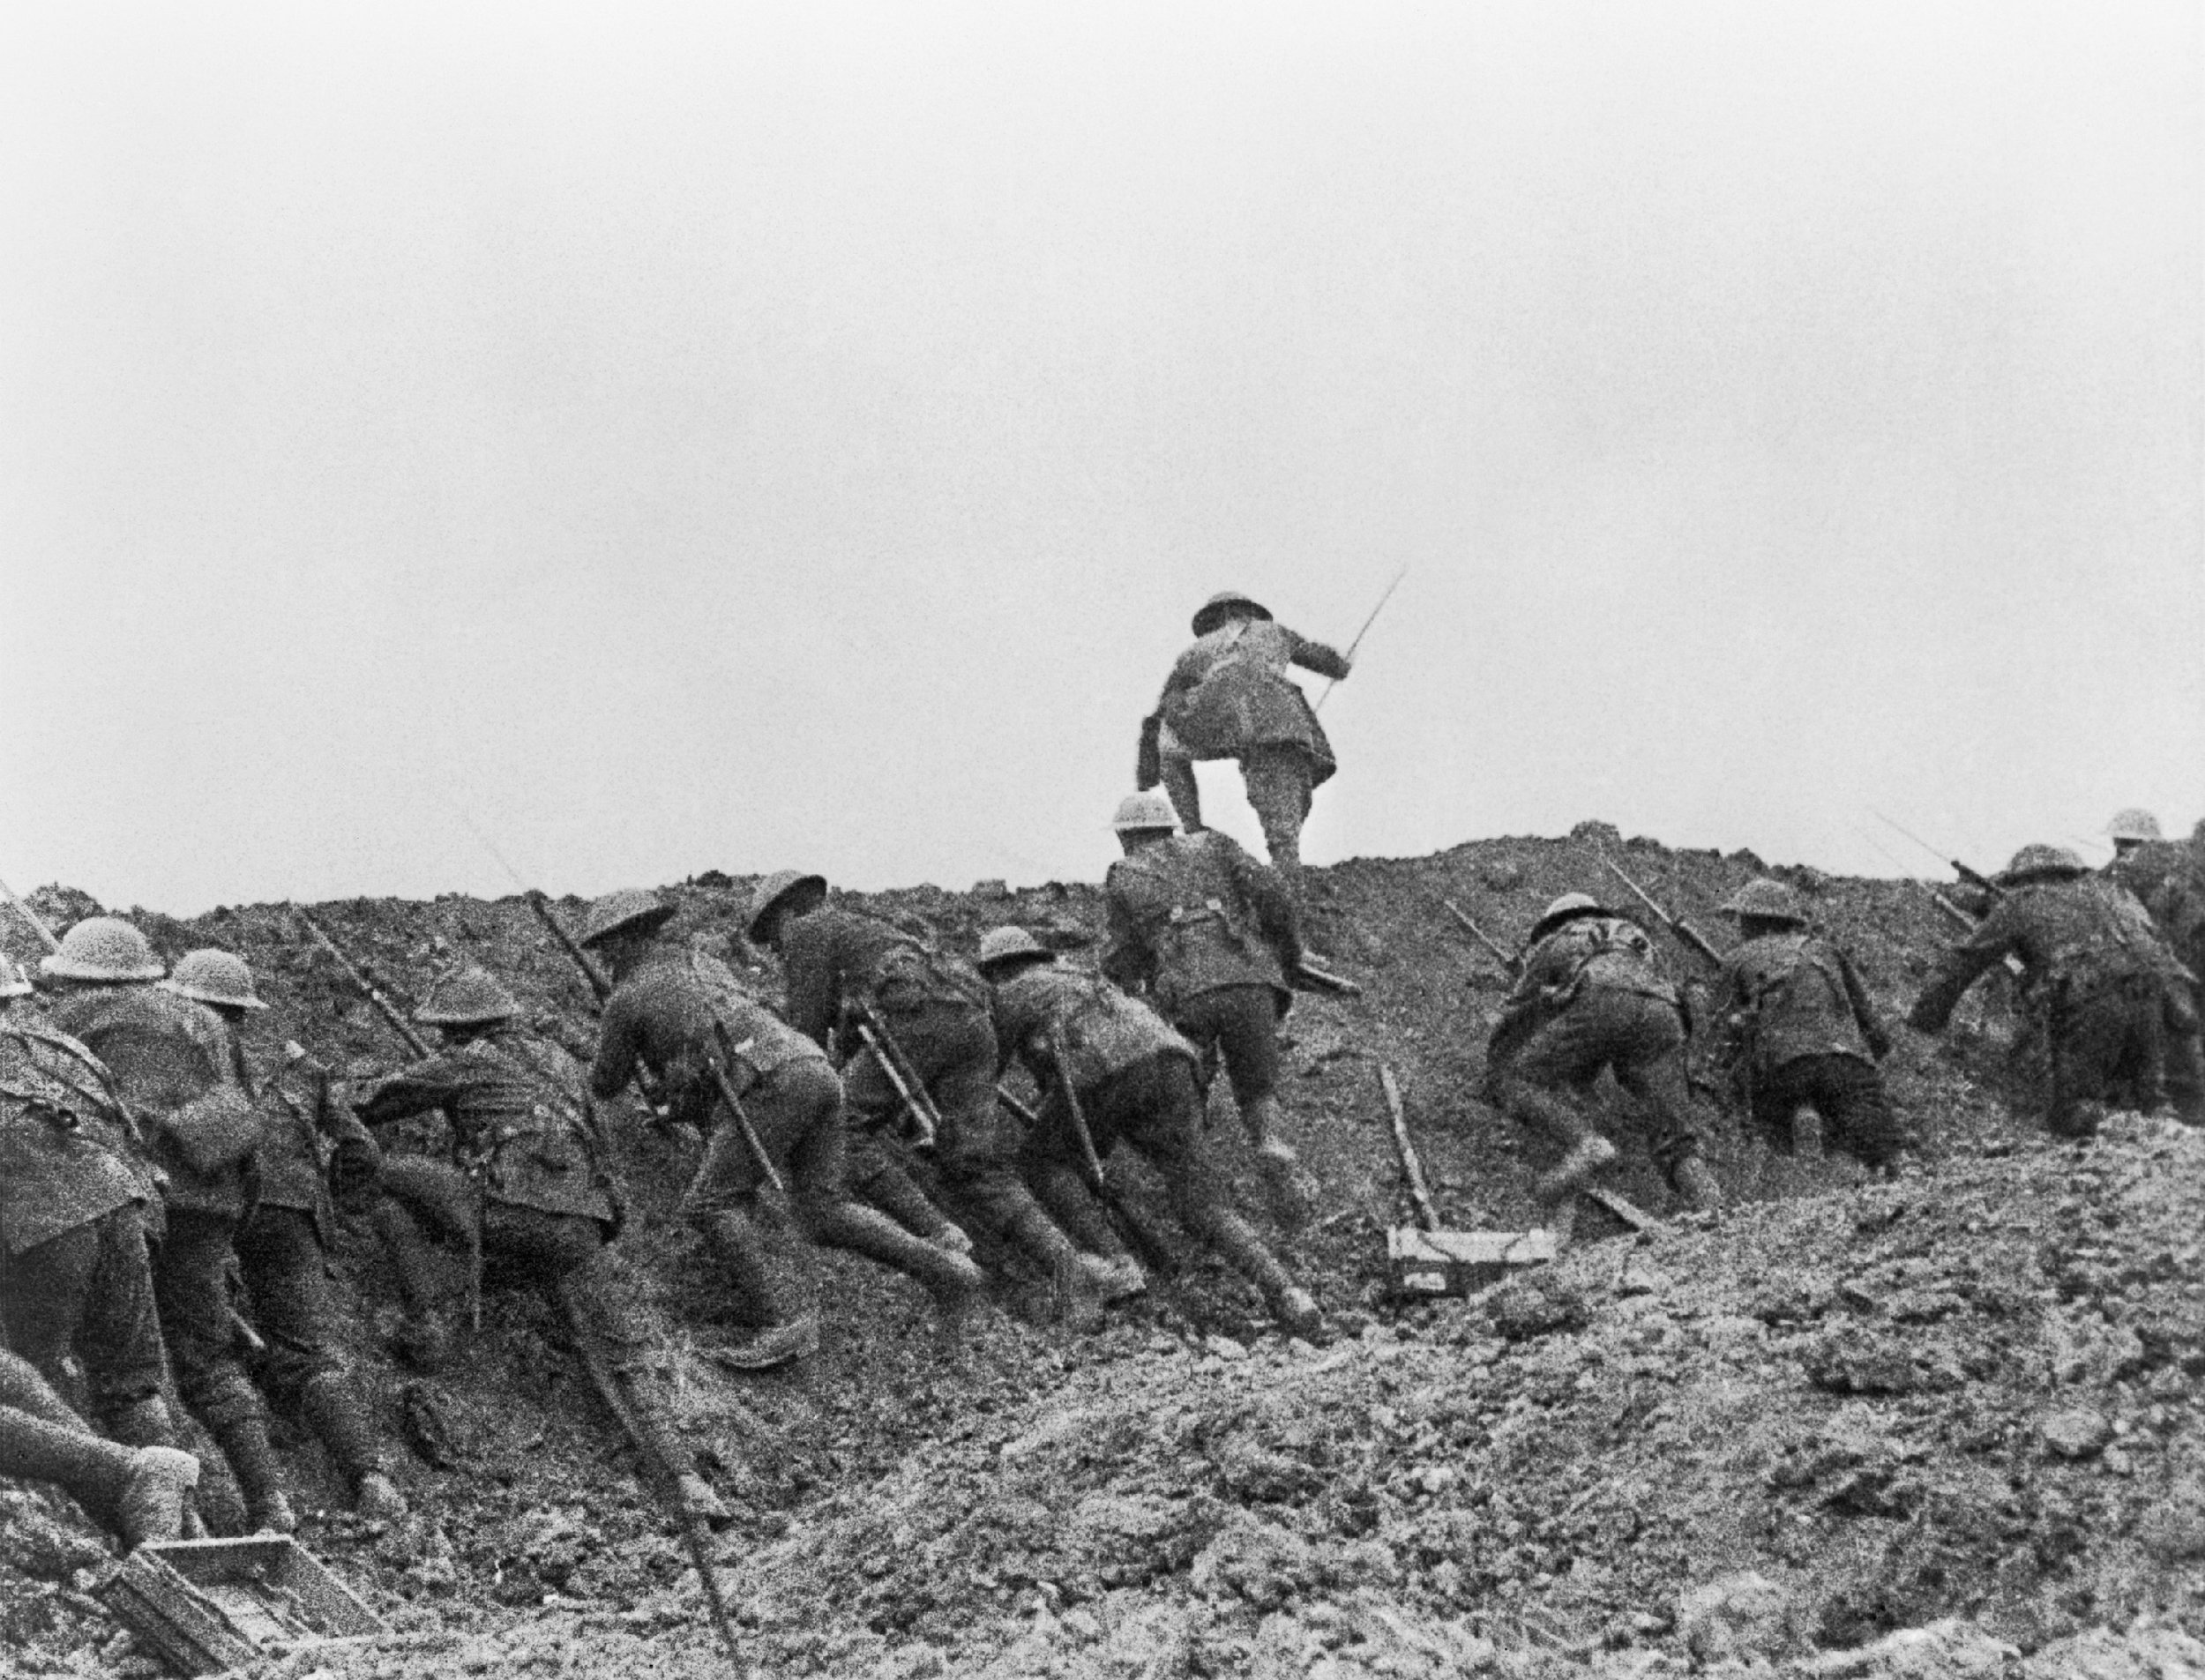 Staged scene from    The Battle of the Somme    film, 1916   British troops go 'over the top' into 'No Man's Land'. This   scene was staged for the camera at a training school behind the lines.  © IWM (Q 70164)